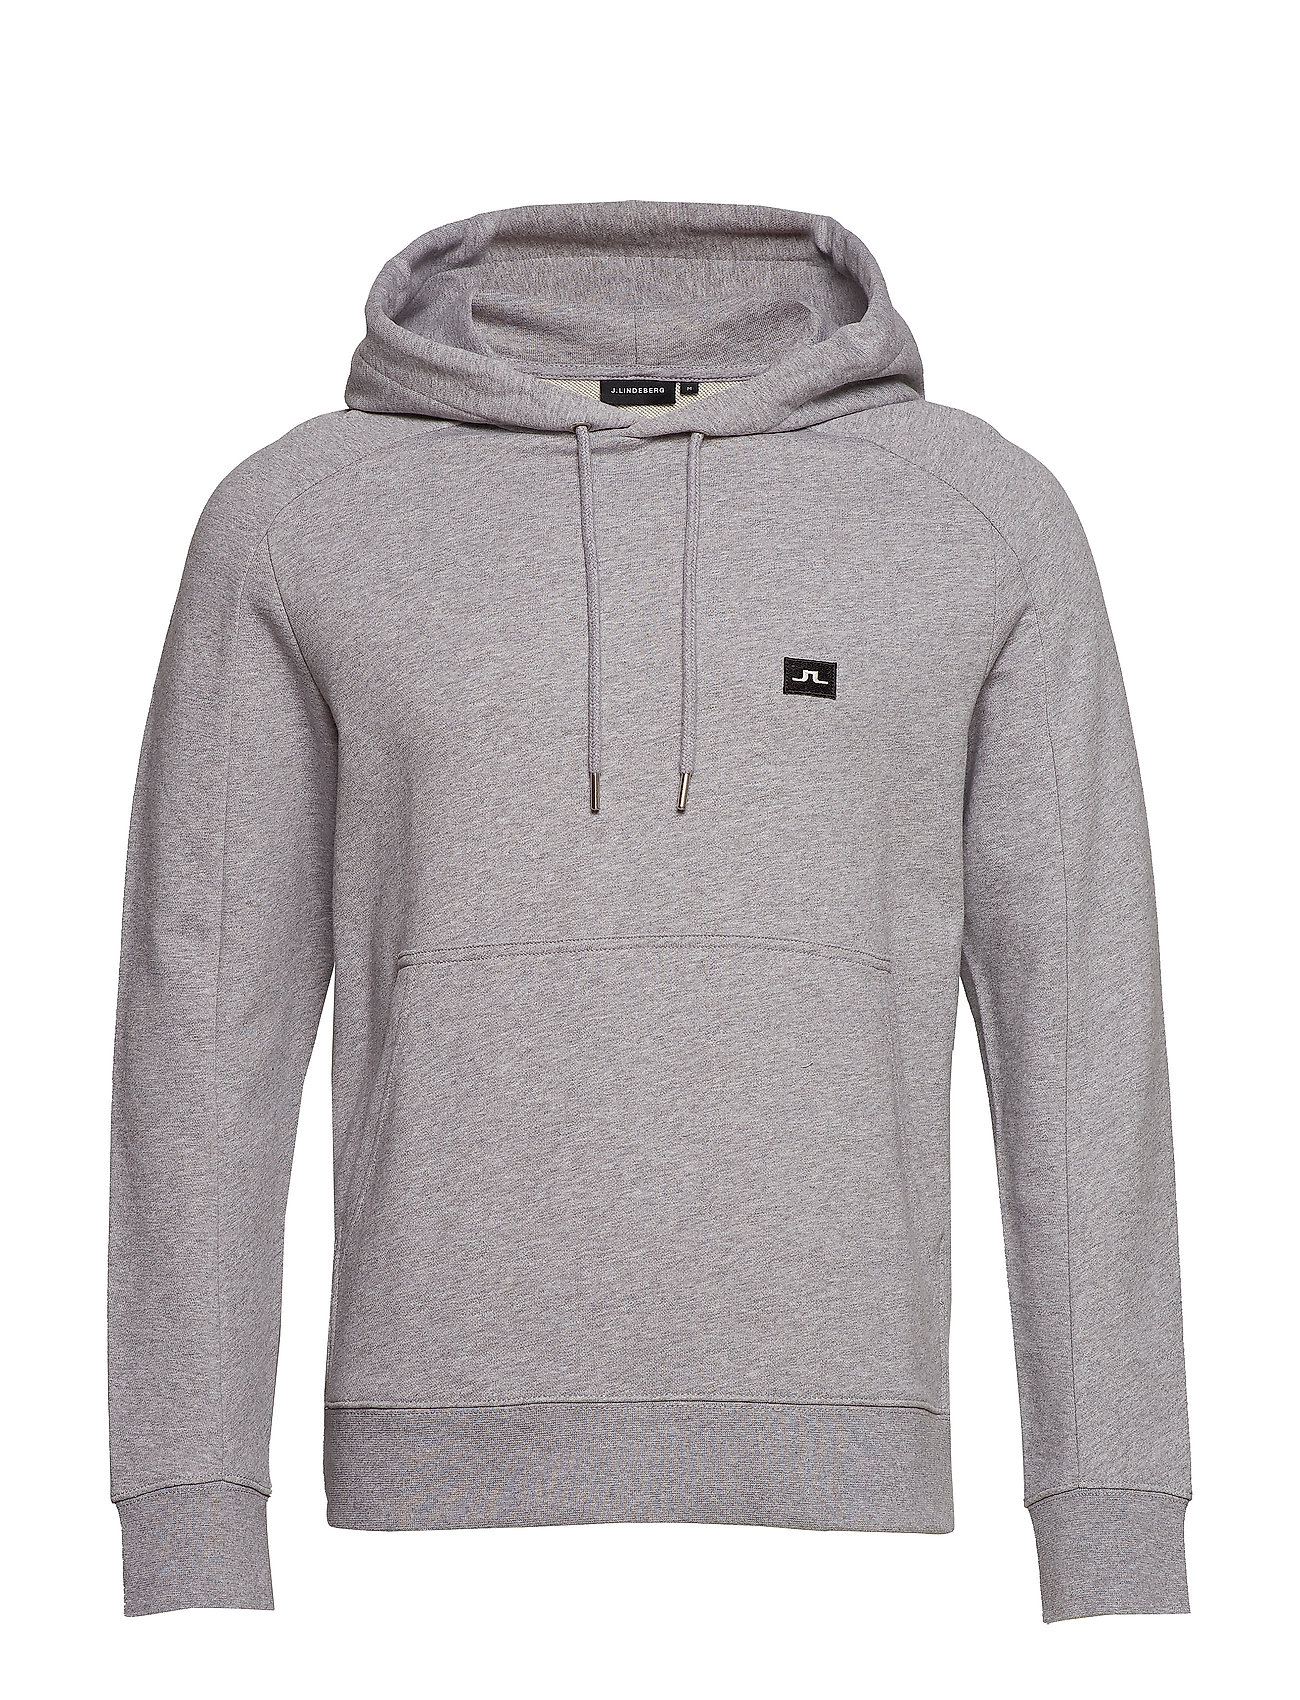 J. Lindeberg Throw Hood Ring loop sweat - LT GREY MELANGE